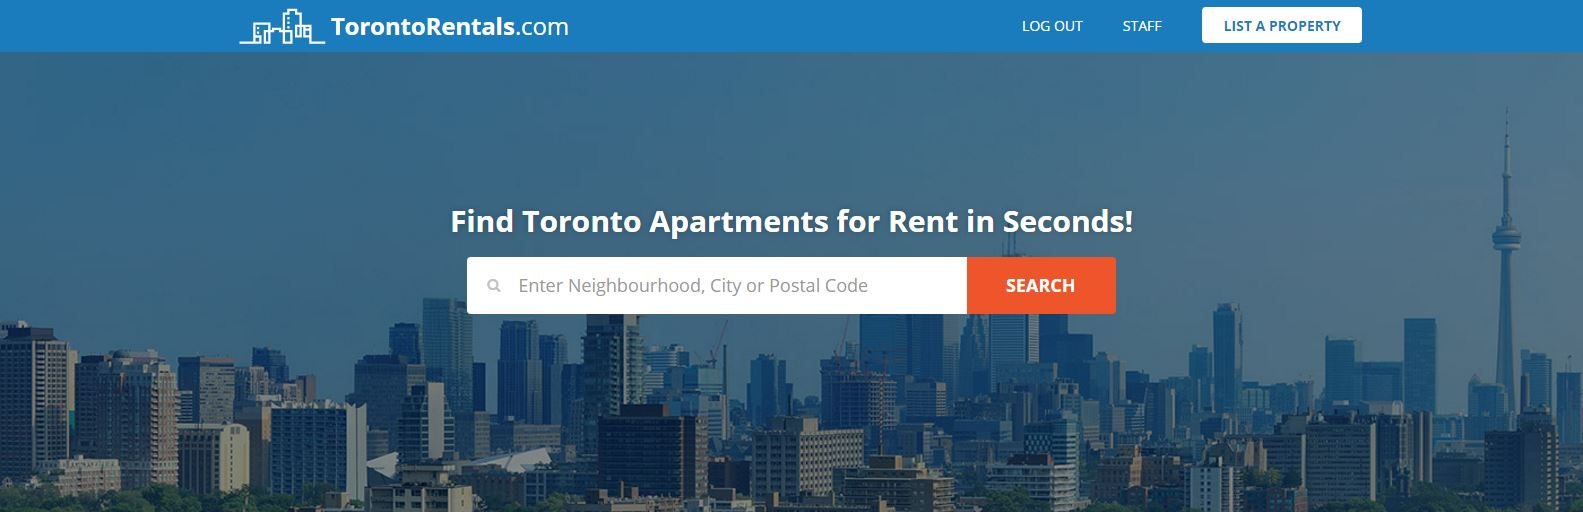 Looking to rent your next apartment? Search with Toronto Rentals